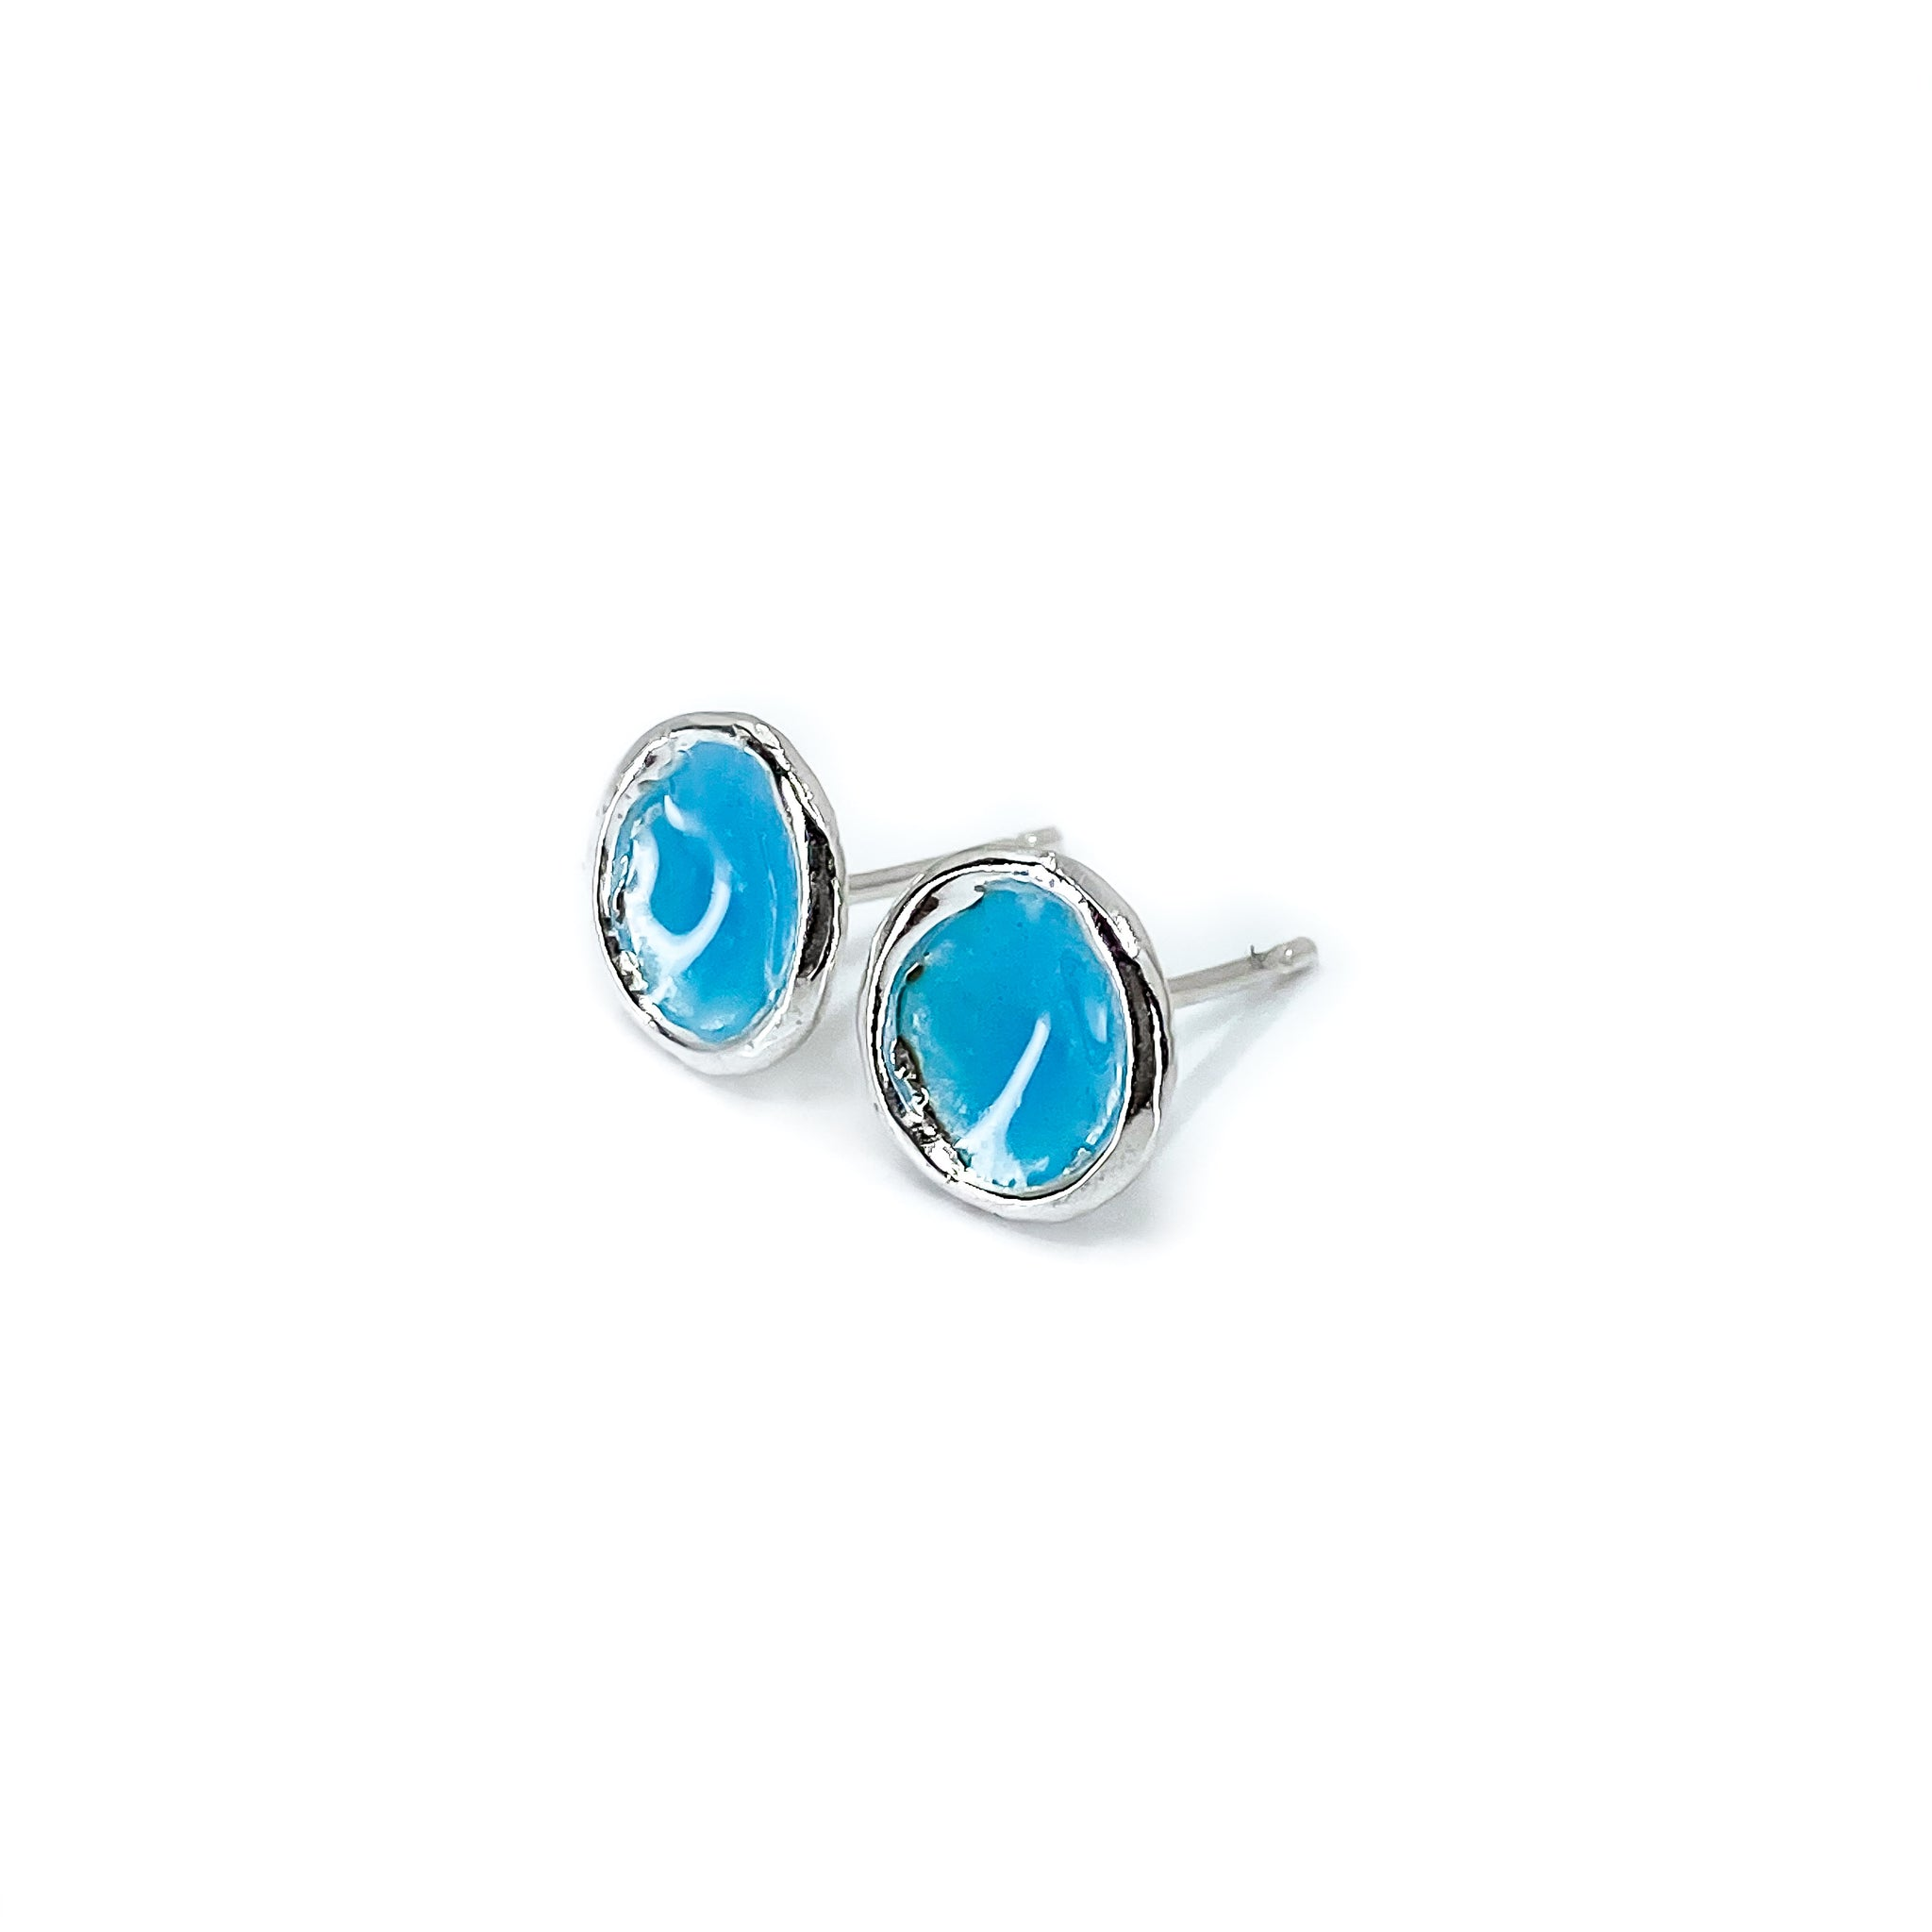 'Island Sky' Light Blue Enamel Silver Droplet Stud Earrings